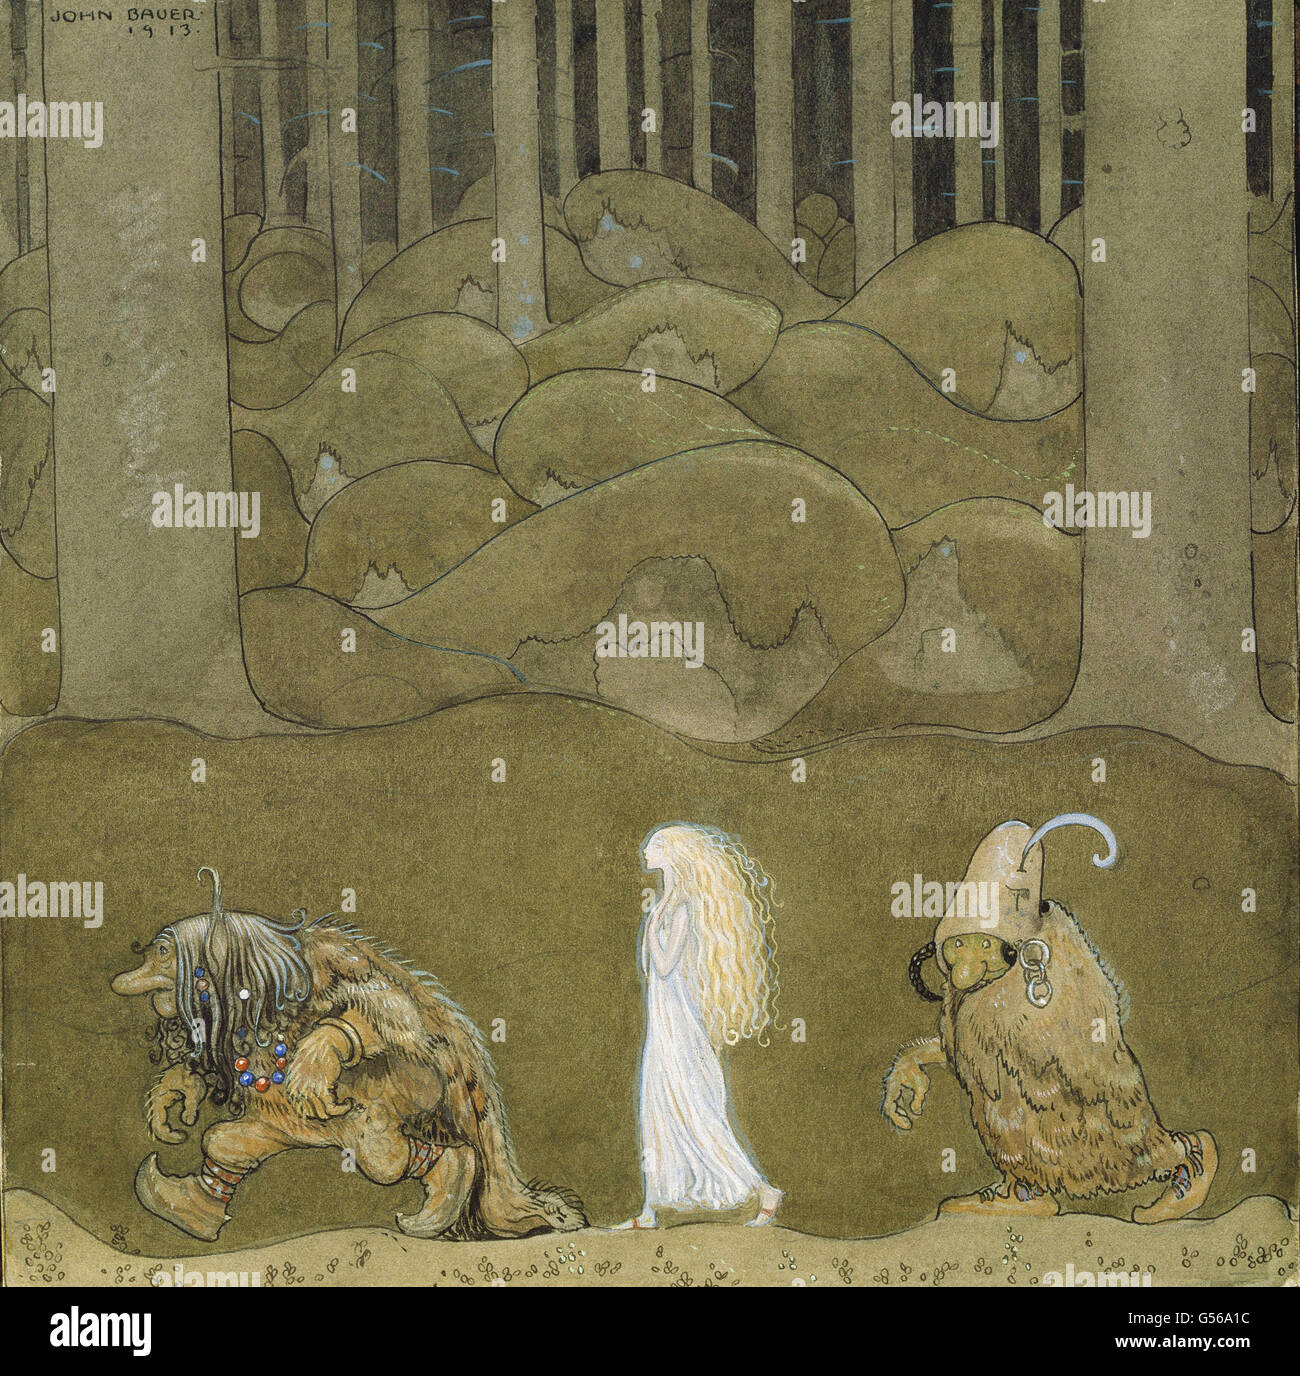 John Bauer - The Princess and the Trolls - Stock Image